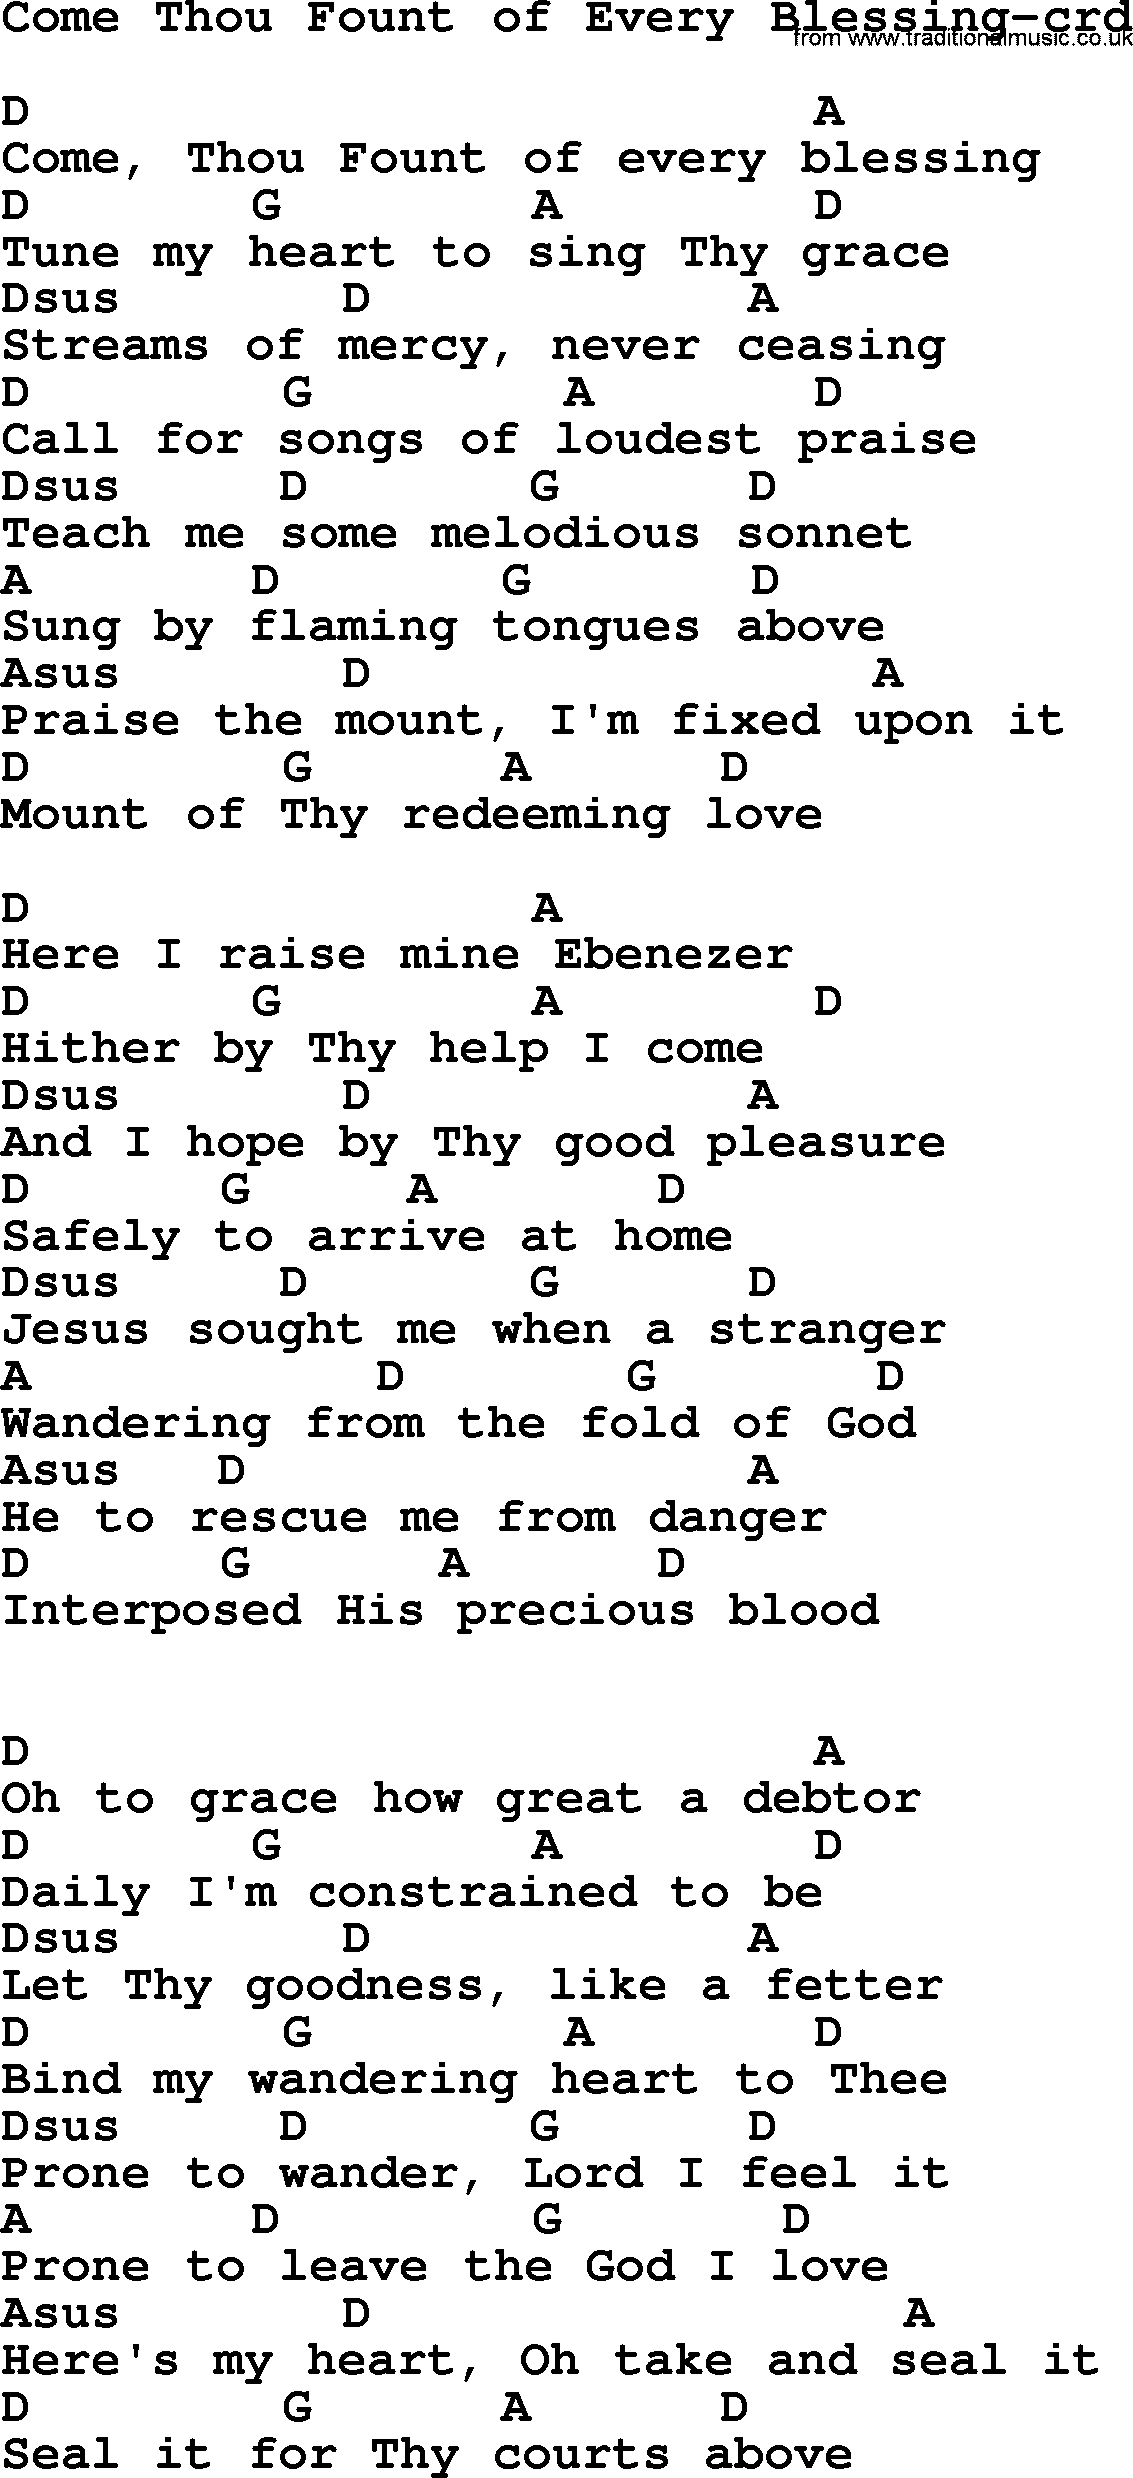 Come Thou Fount Chords Wedding Hymns And Songs Come Thou Fount Of Every Blessing Lyrics